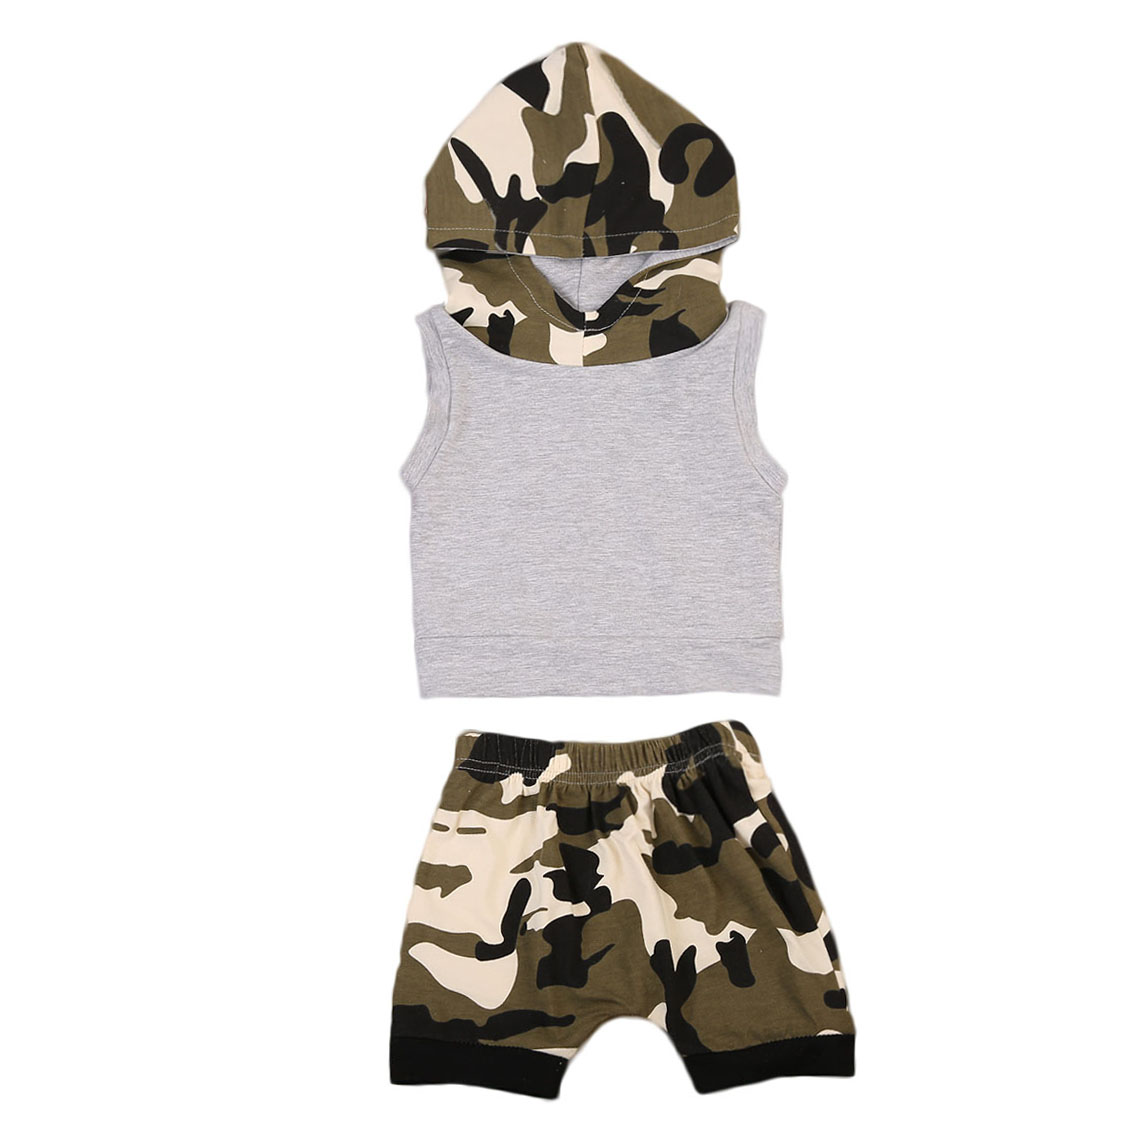 2Pcs Newborn Kids Baby Boys Camouflage Sets Sleeveless Hooded Hoodies Casual Pants Clothes Outfits Sets Summer 0-24 M